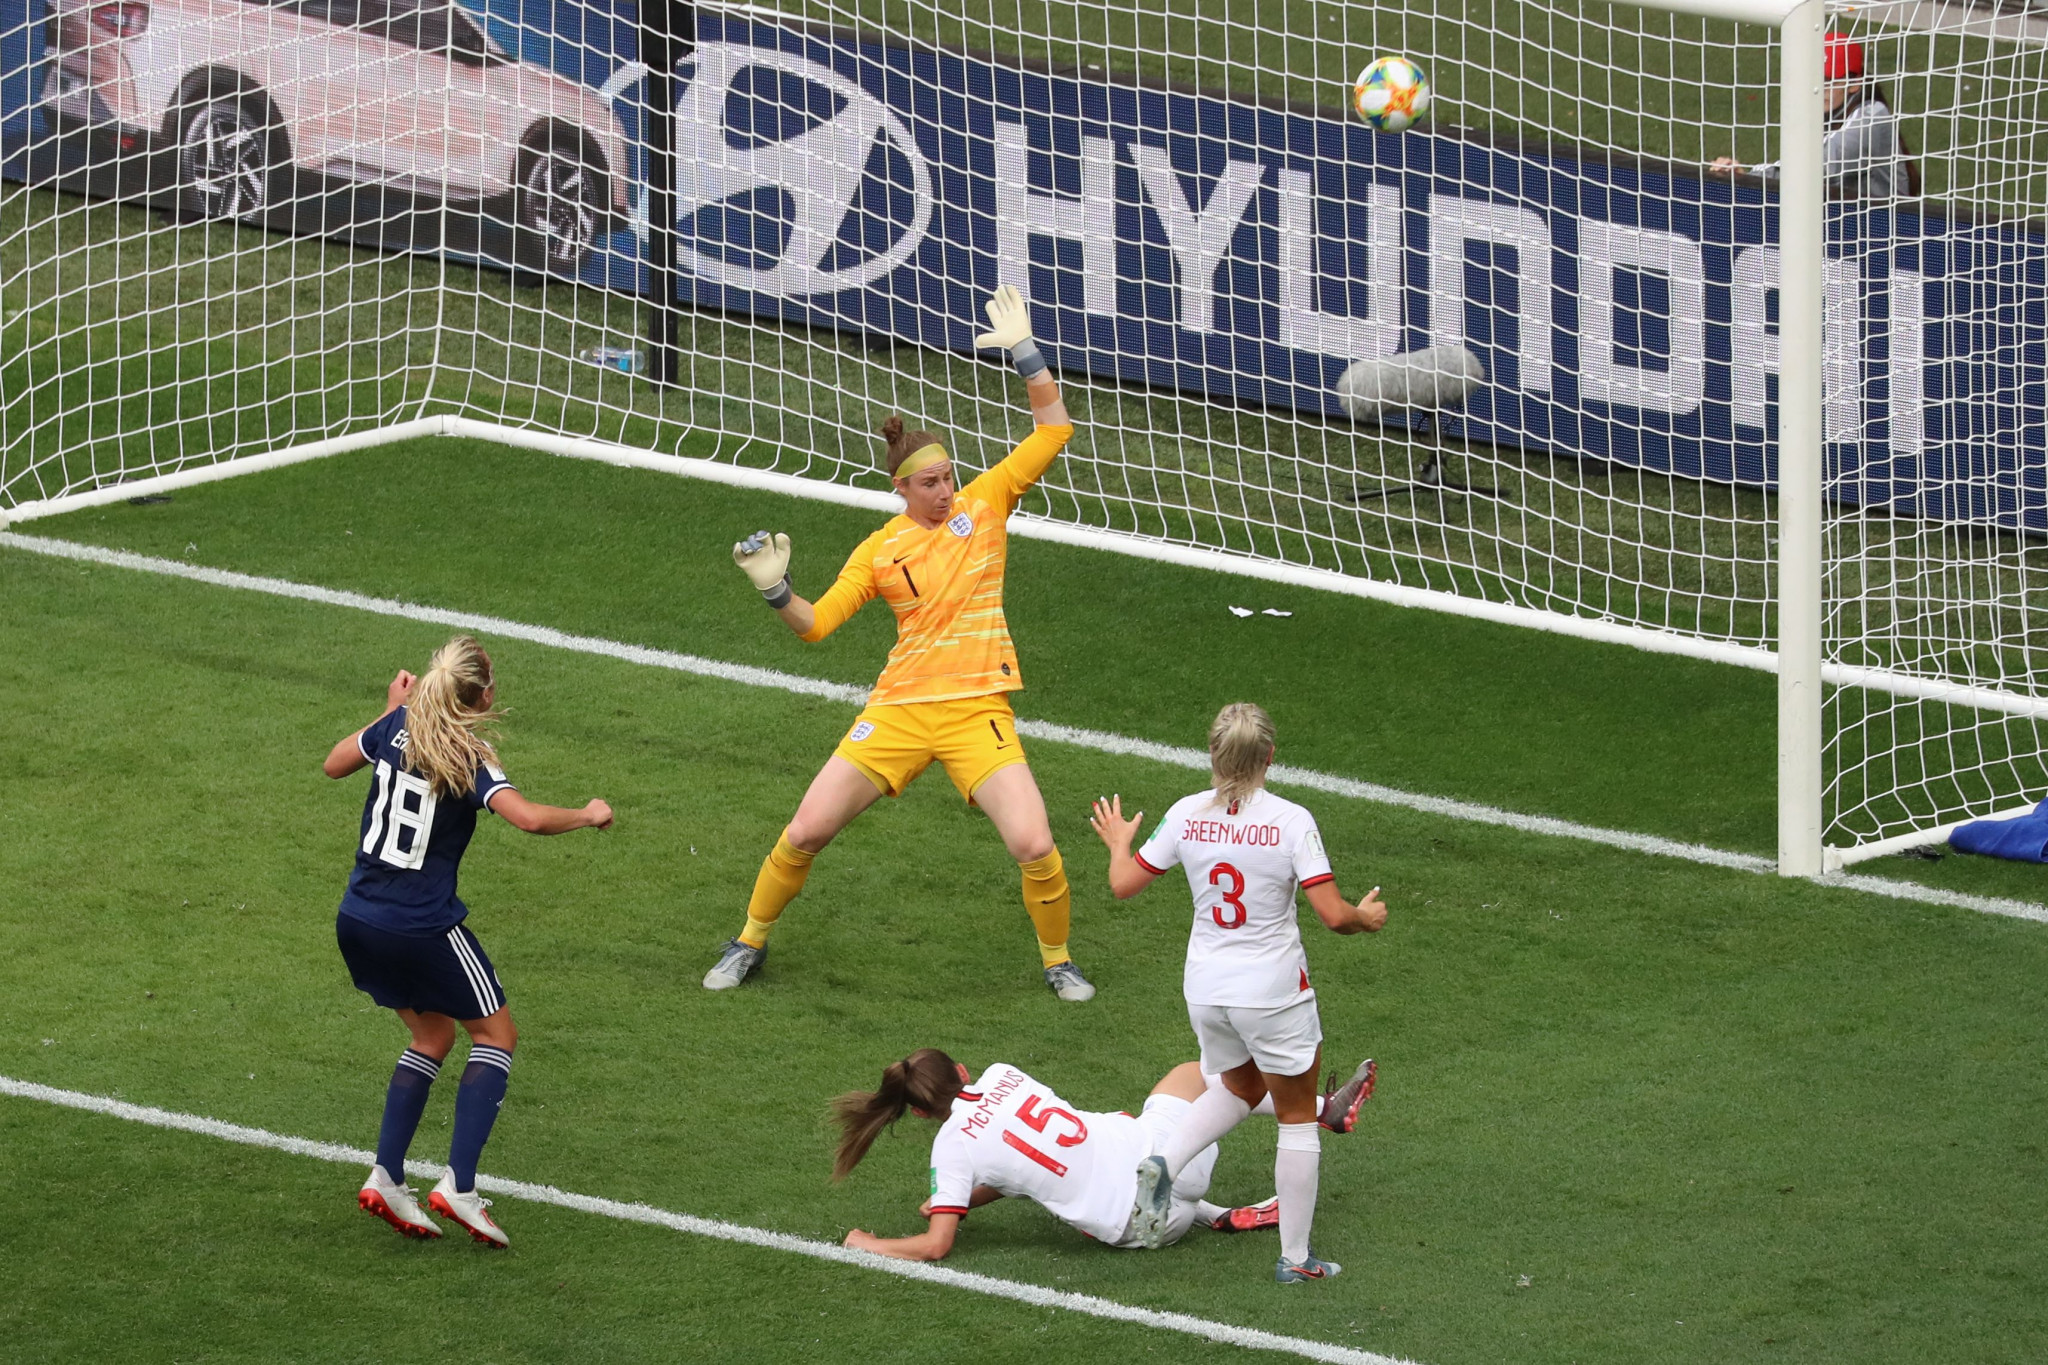 Claire Emslie pulled one back for Scotland, the nation's first-ever Women's World Cup goal ©Getty Images